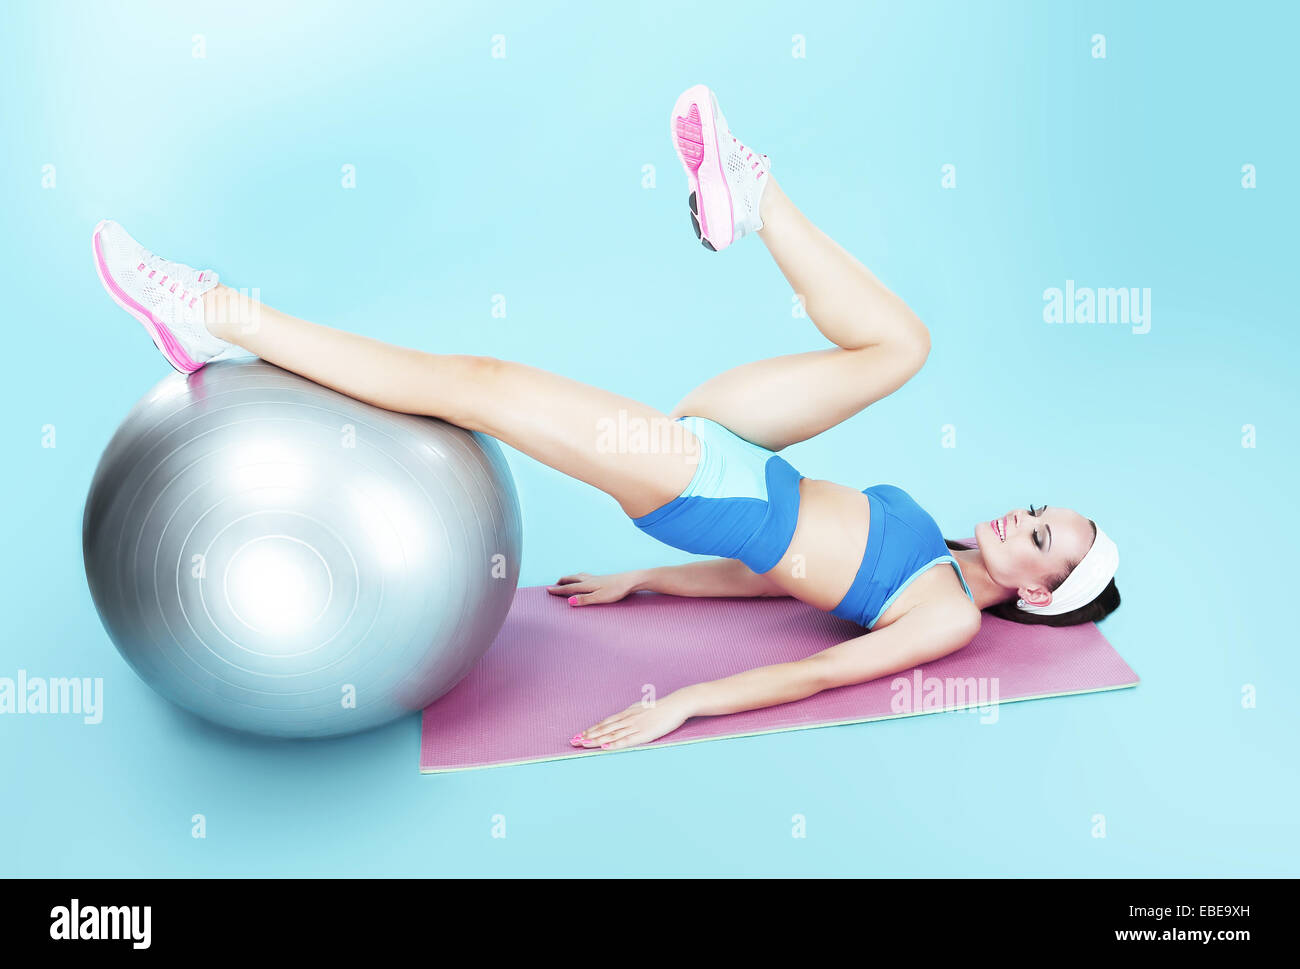 Workout. Active Woman exercising with Fitness Ball Stock Photo